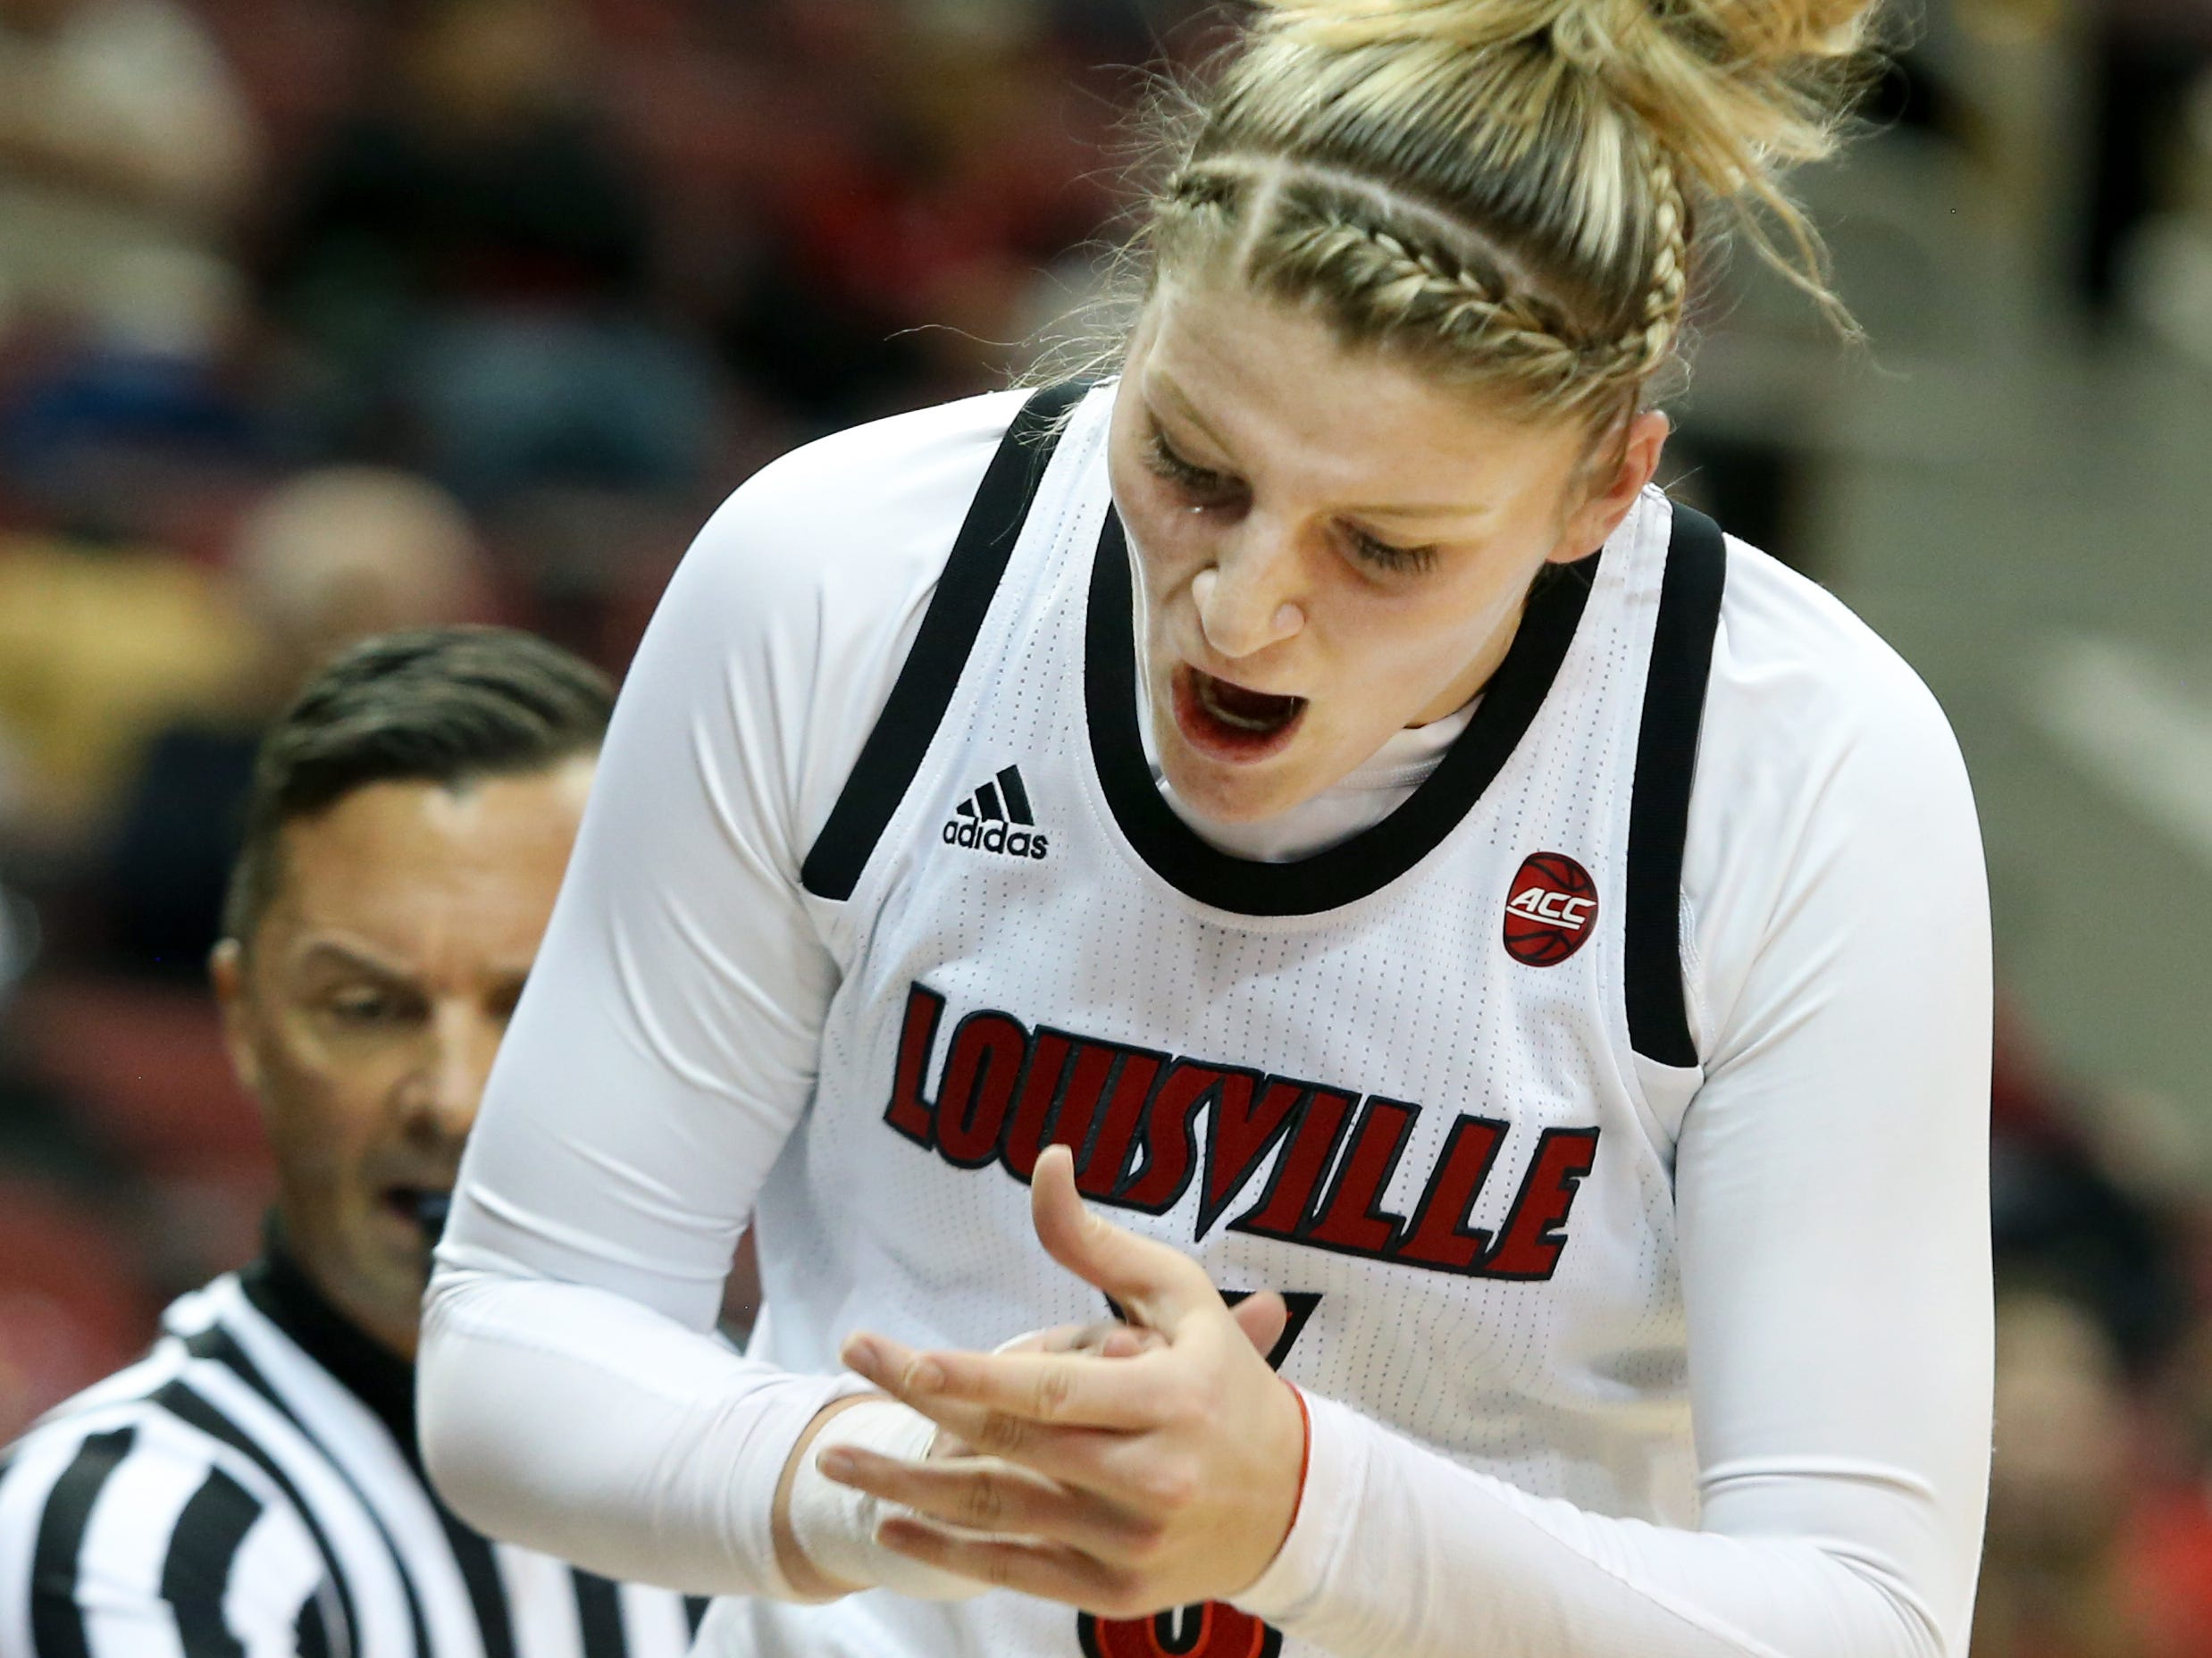 Louisville's Sam Fuehring offers advice to the player on the floor that was guarding her. Dec. 4, 2018